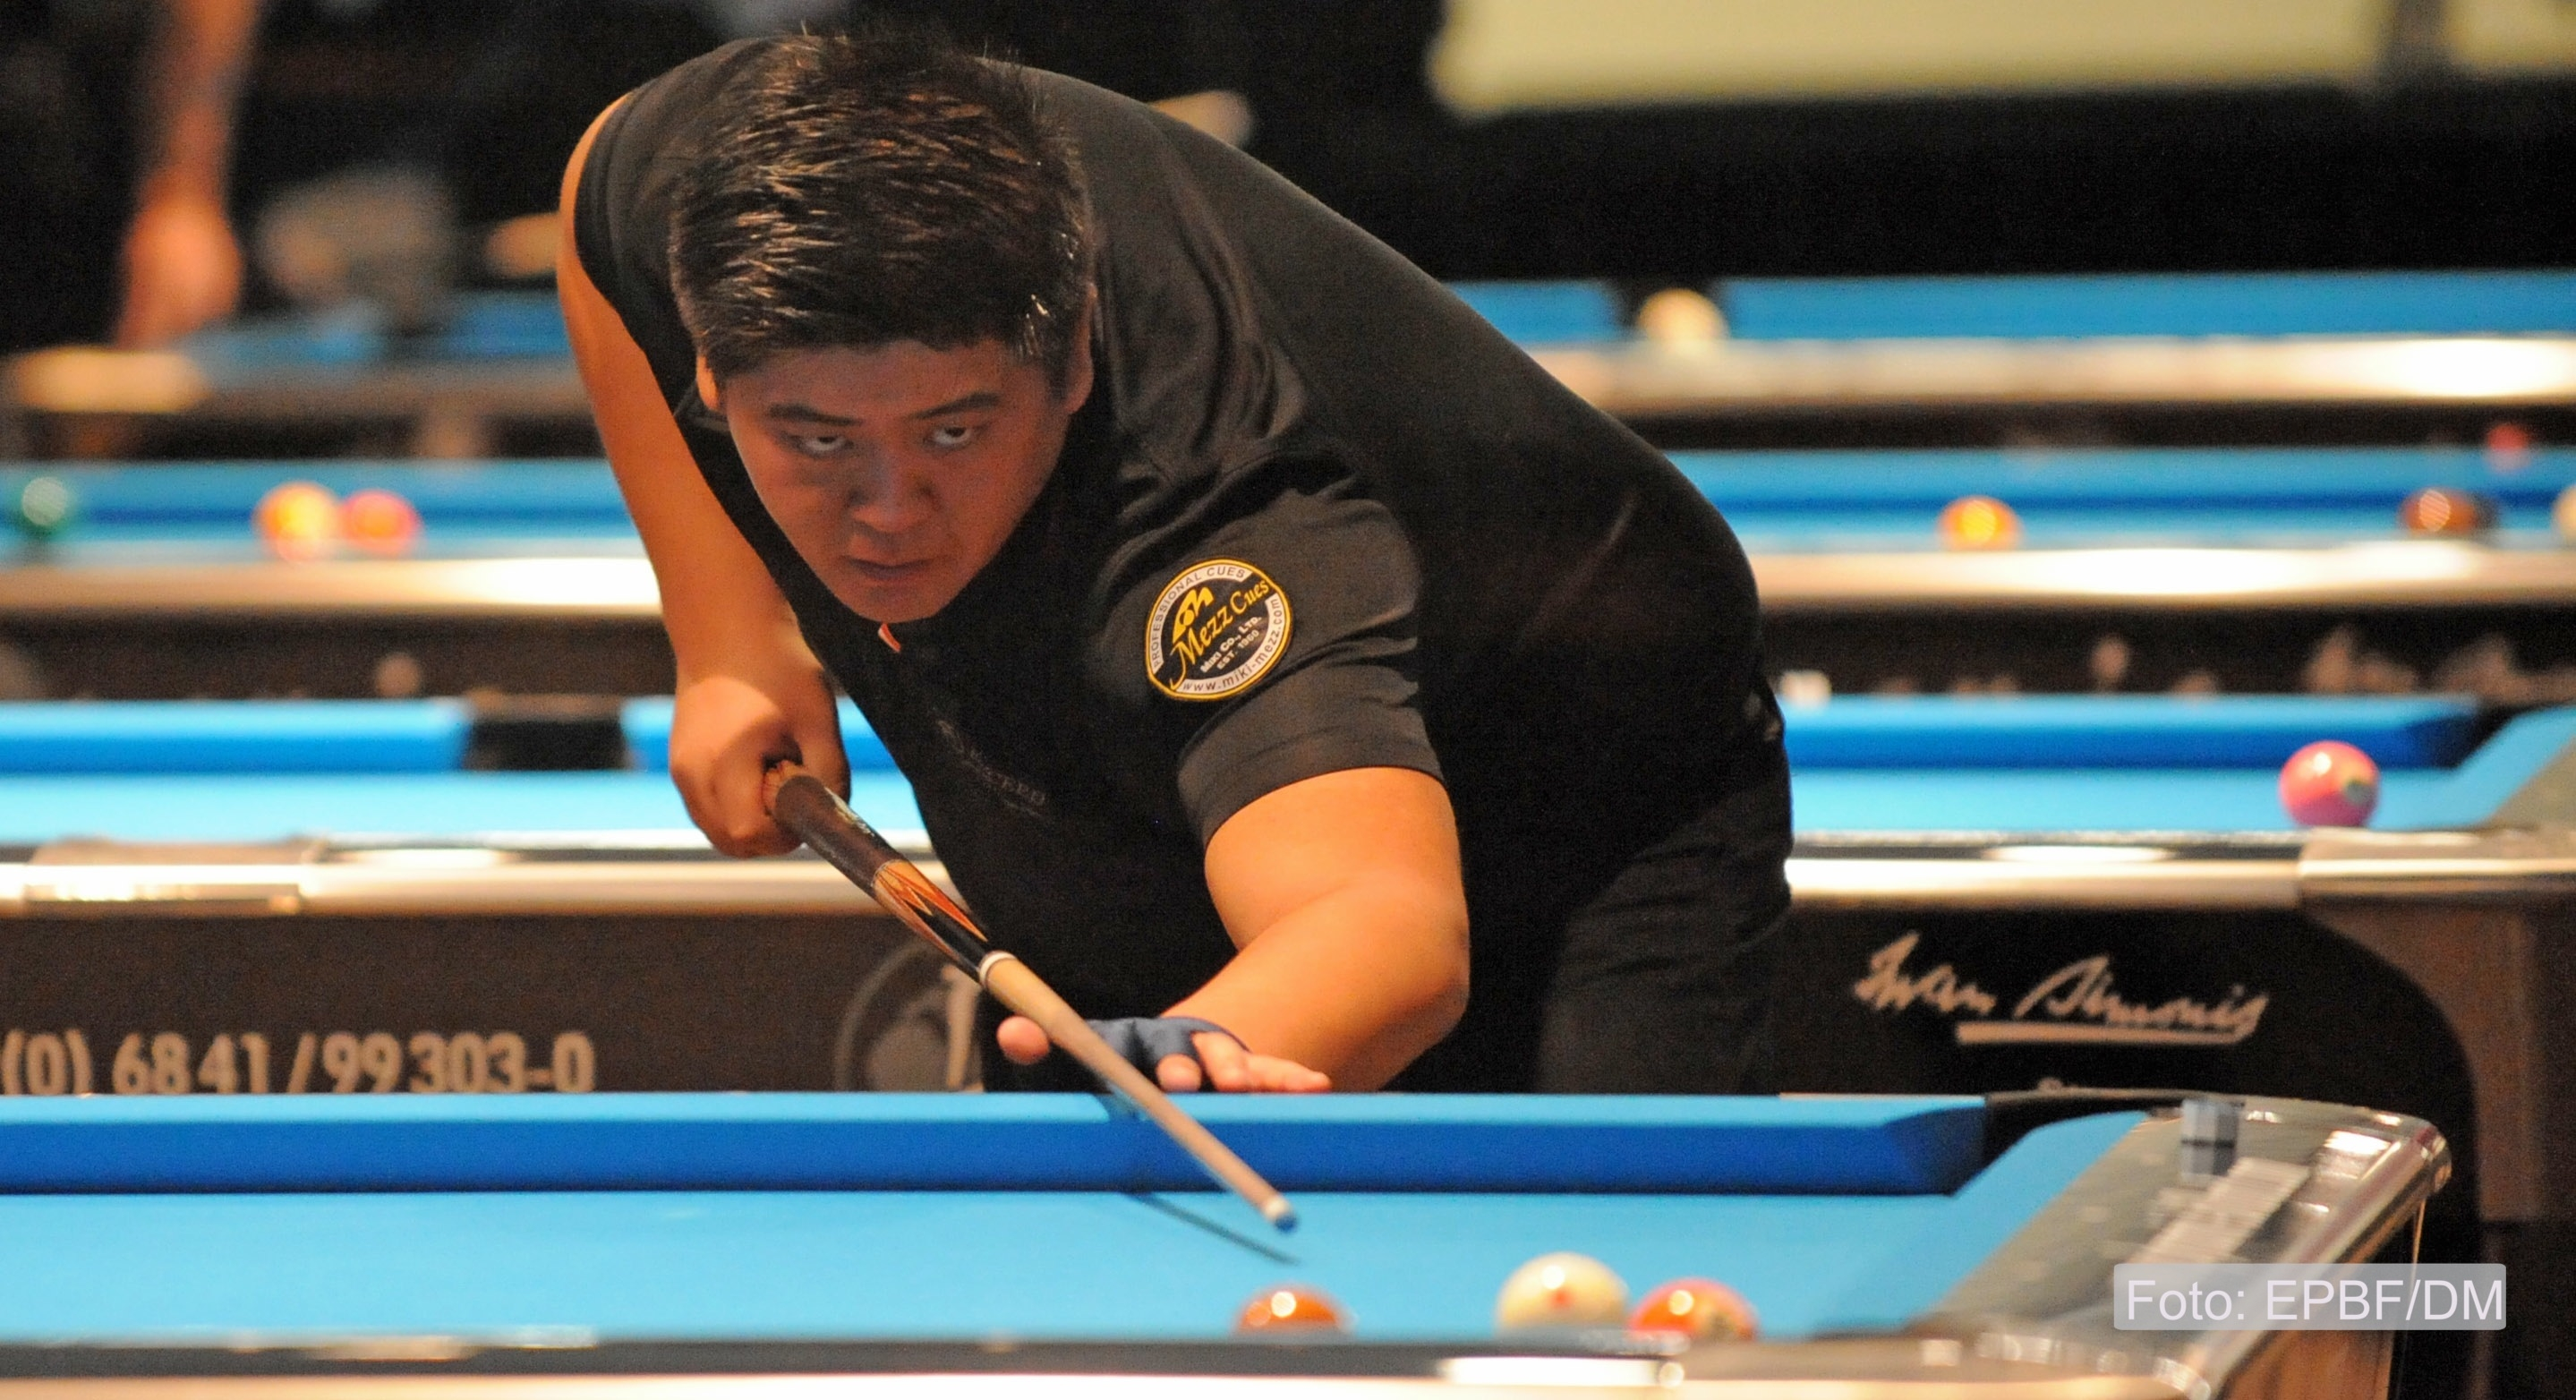 US Pool Billiard He eliminates Chamat and Drago for a seat in the